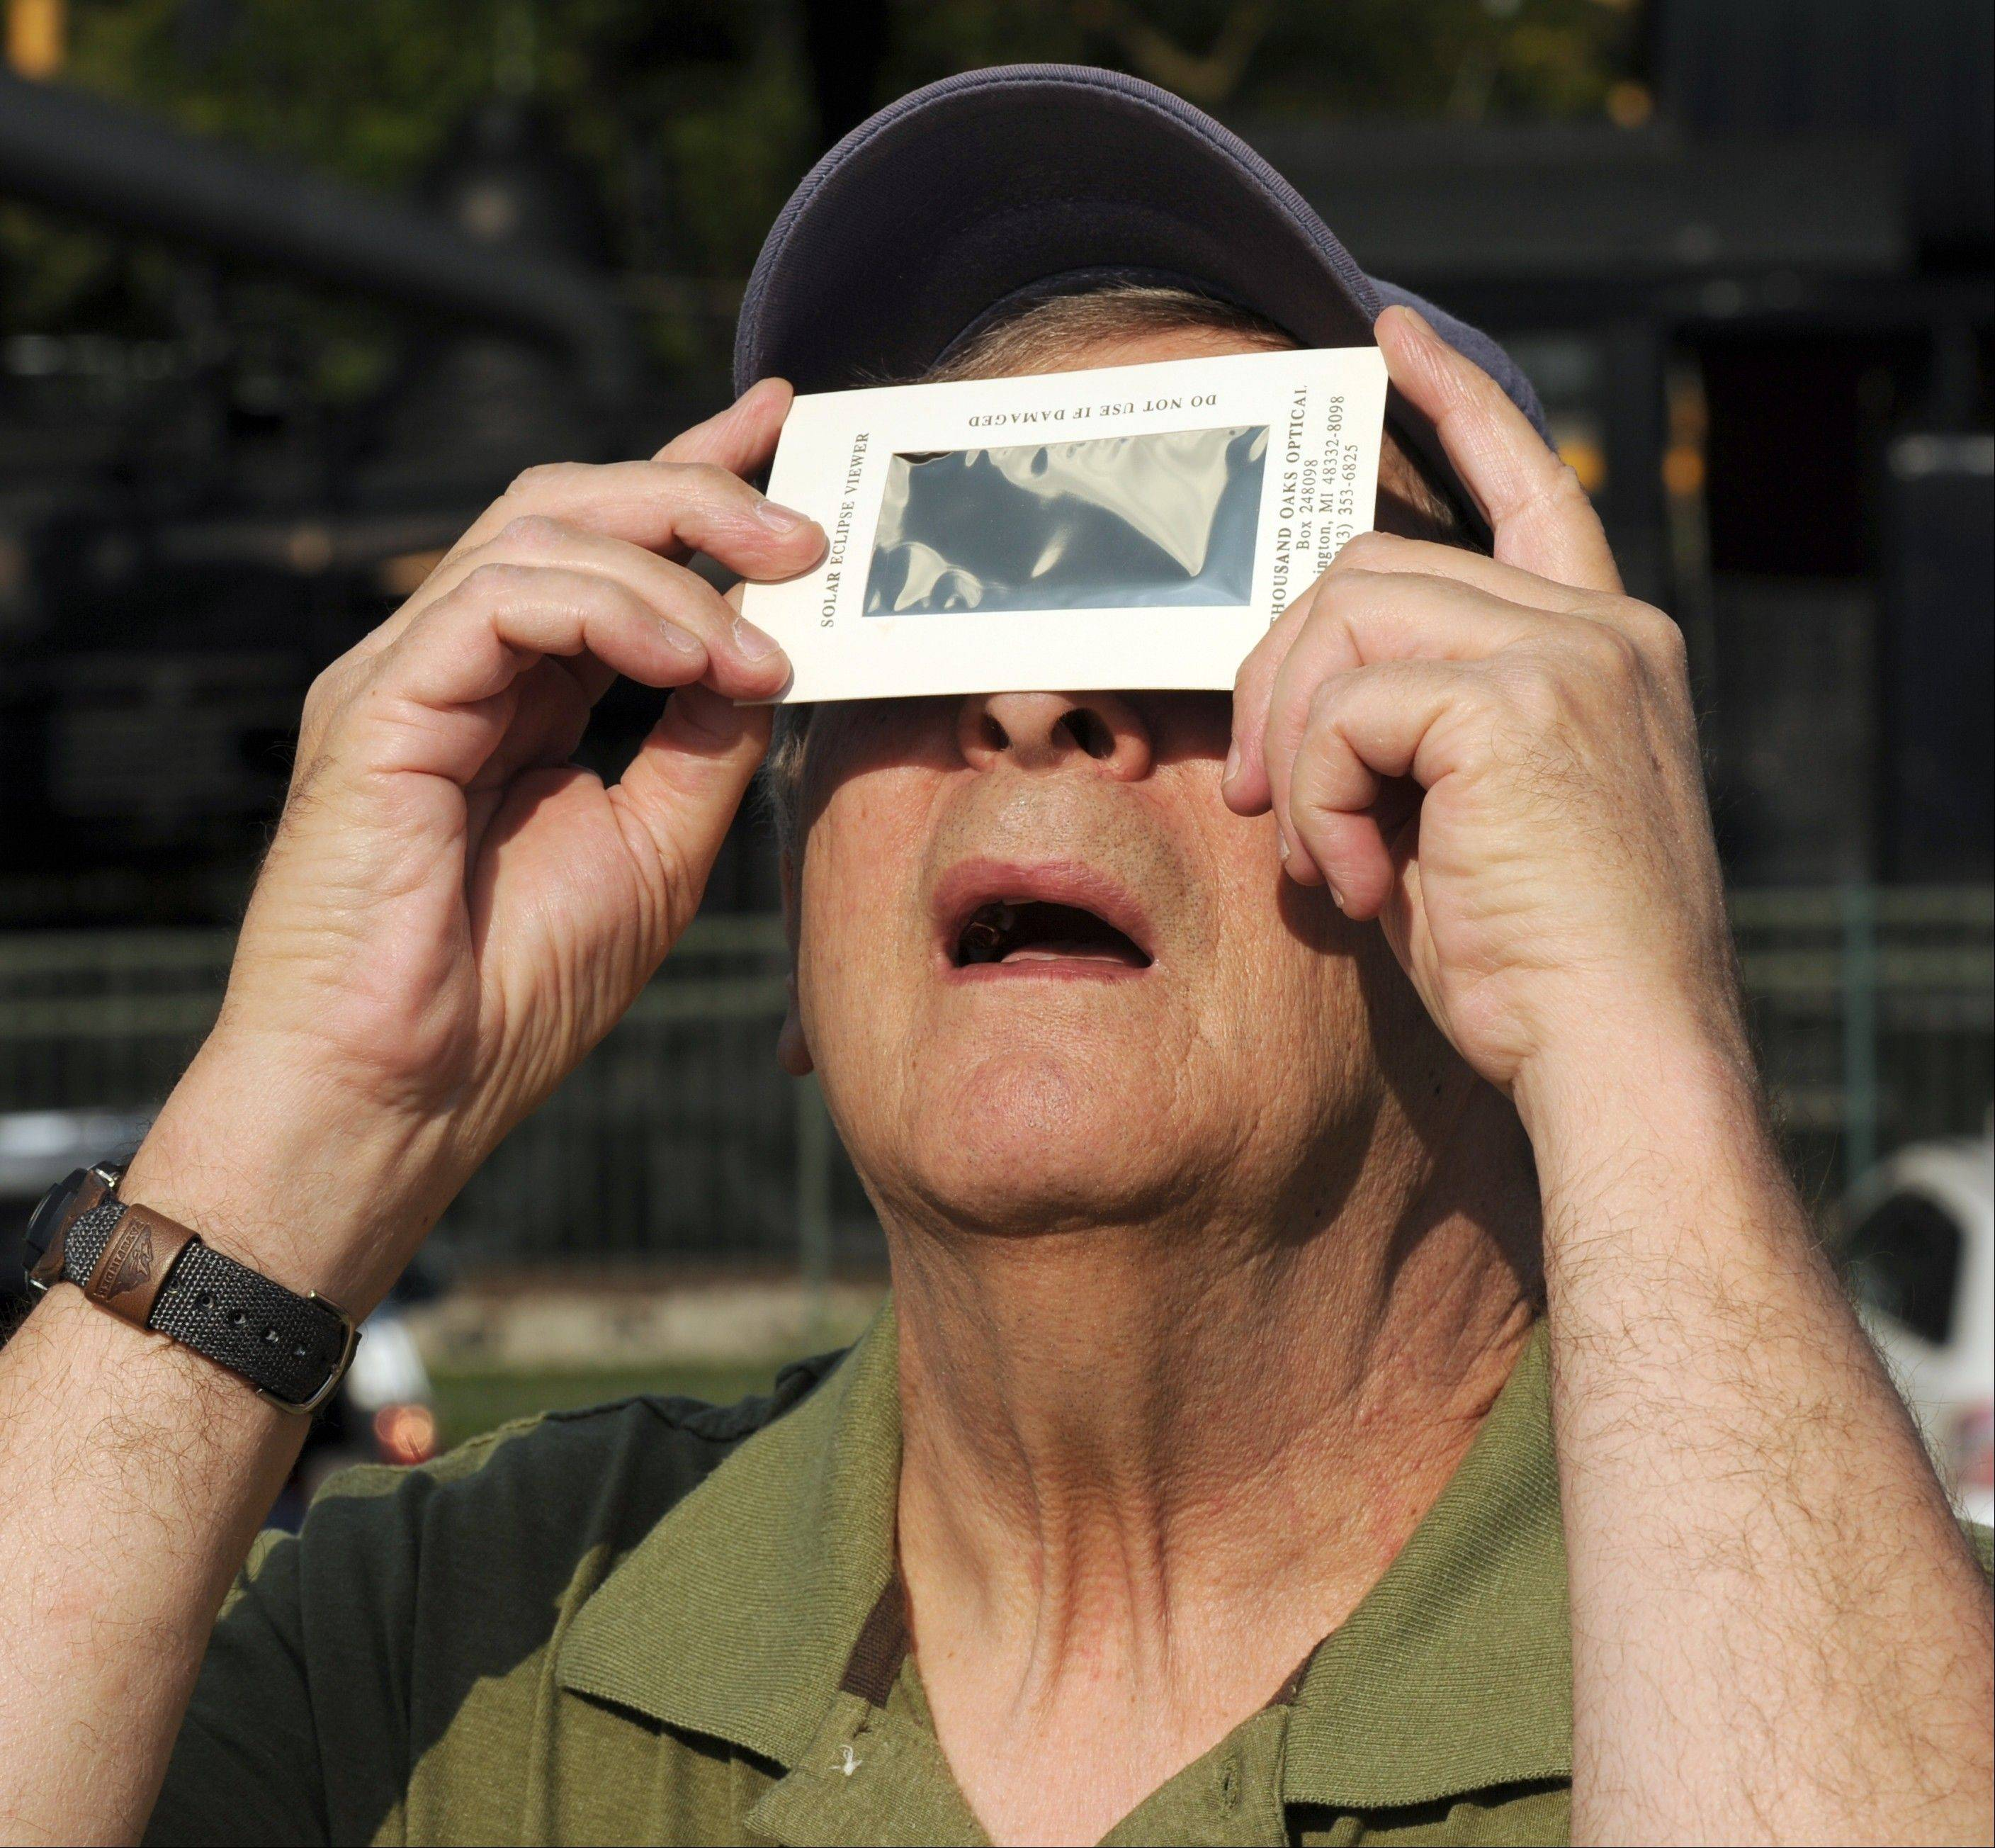 Joseph R. Caruso, of Newburgh, Ind. uses a viewing device made to safely look at solar eclipses as he tries to see the transit of Venus on Tuesday, June 5, 2012. Caruso was one of the people who set up their telescopes along the Ohio River behind the Evansville Museum of Arts, History & Science in Evansville, Ind. to watch as the planet moves in front of the sun. Although some people said they could see the small dot of Venus using this viewer, Caruso was not having any luck.